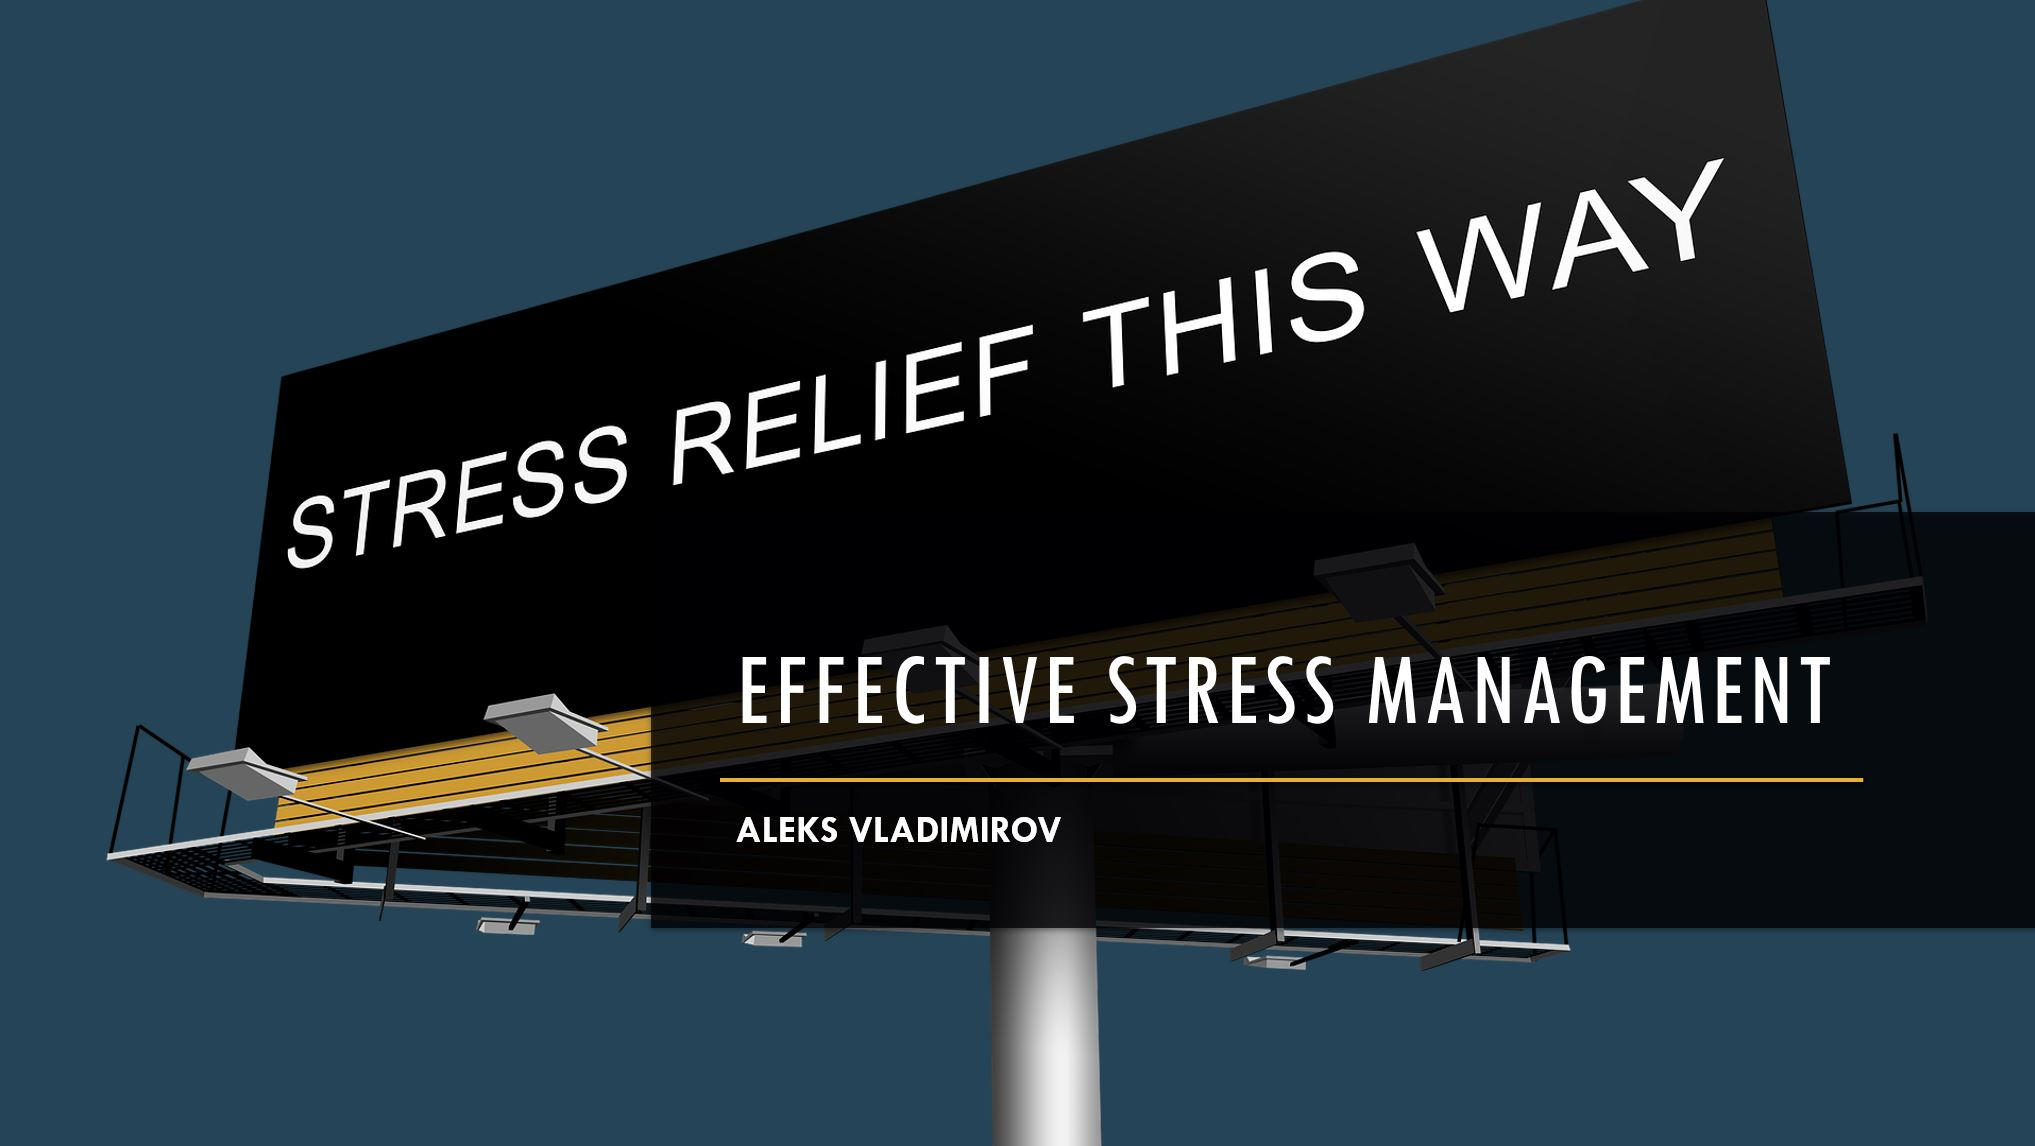 Effective Stress Management Handout